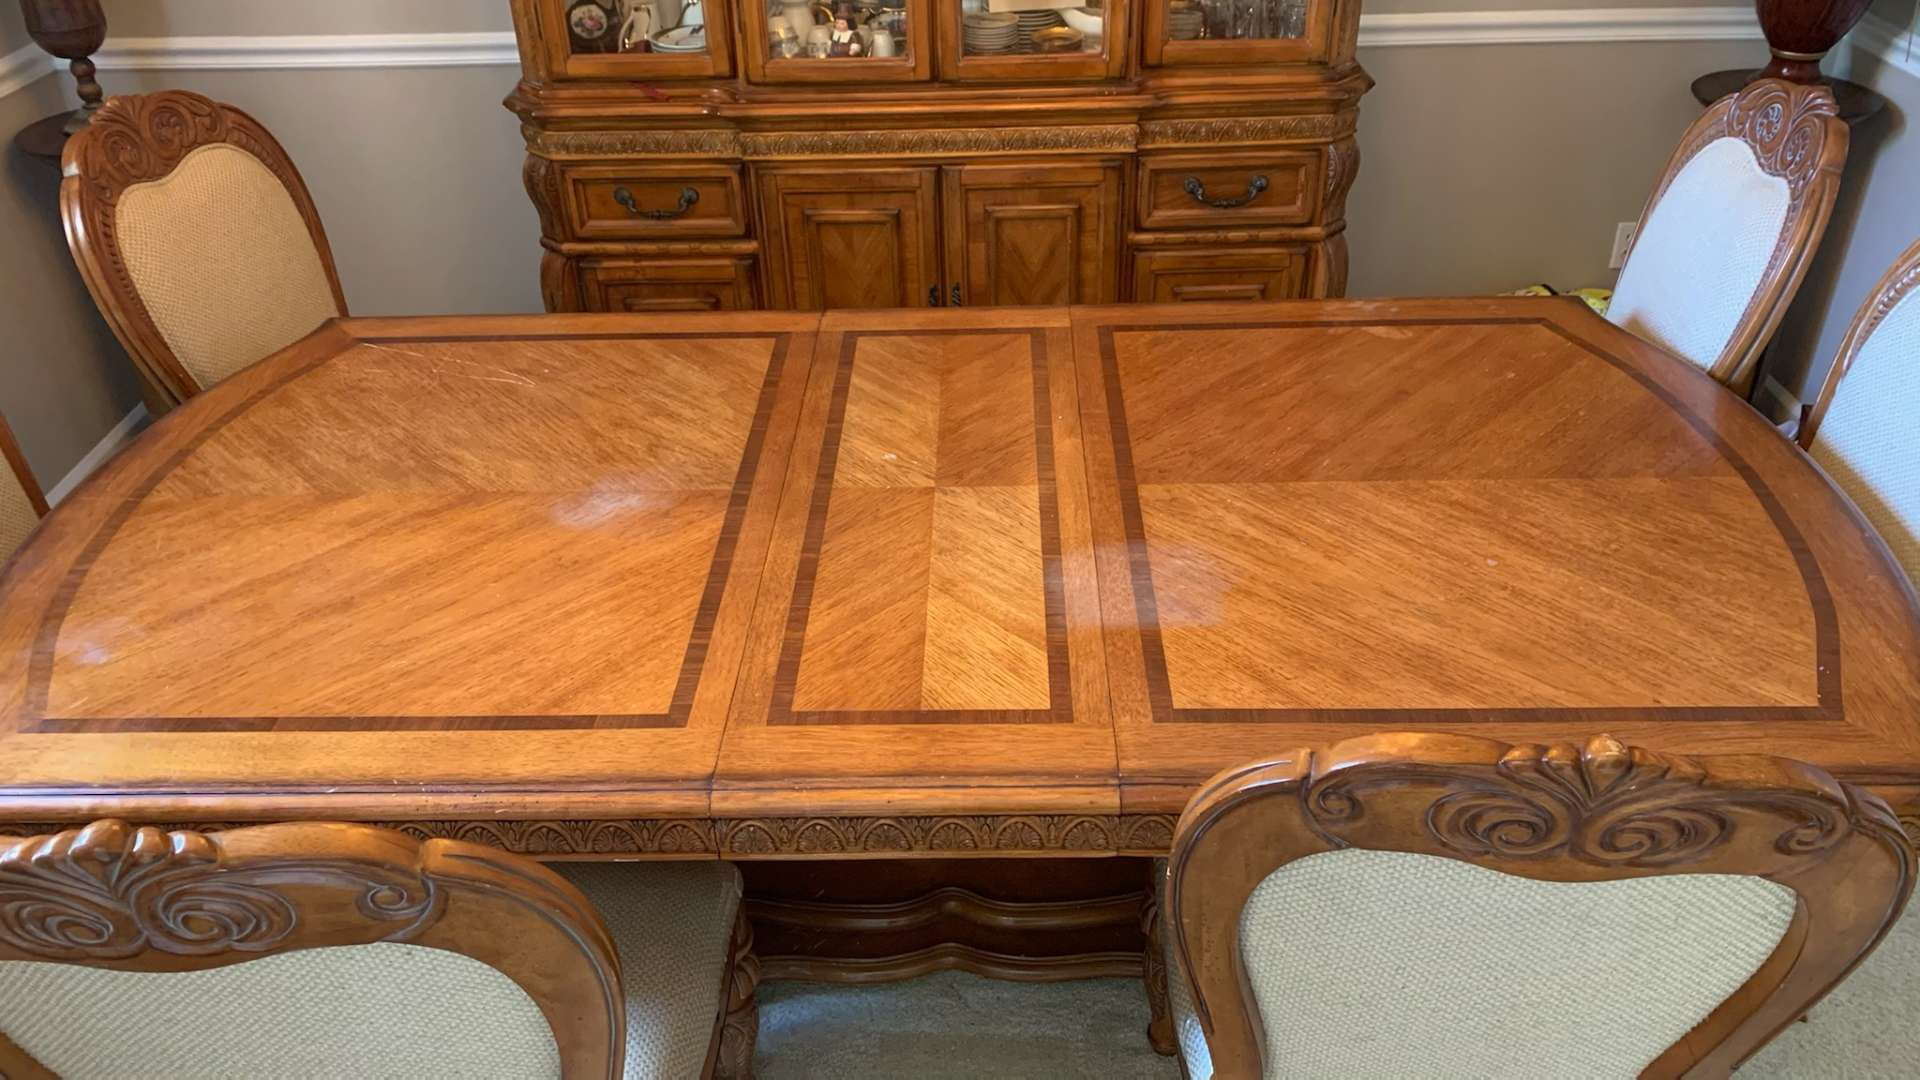 200 very nice dining room table and six chairs in great condition